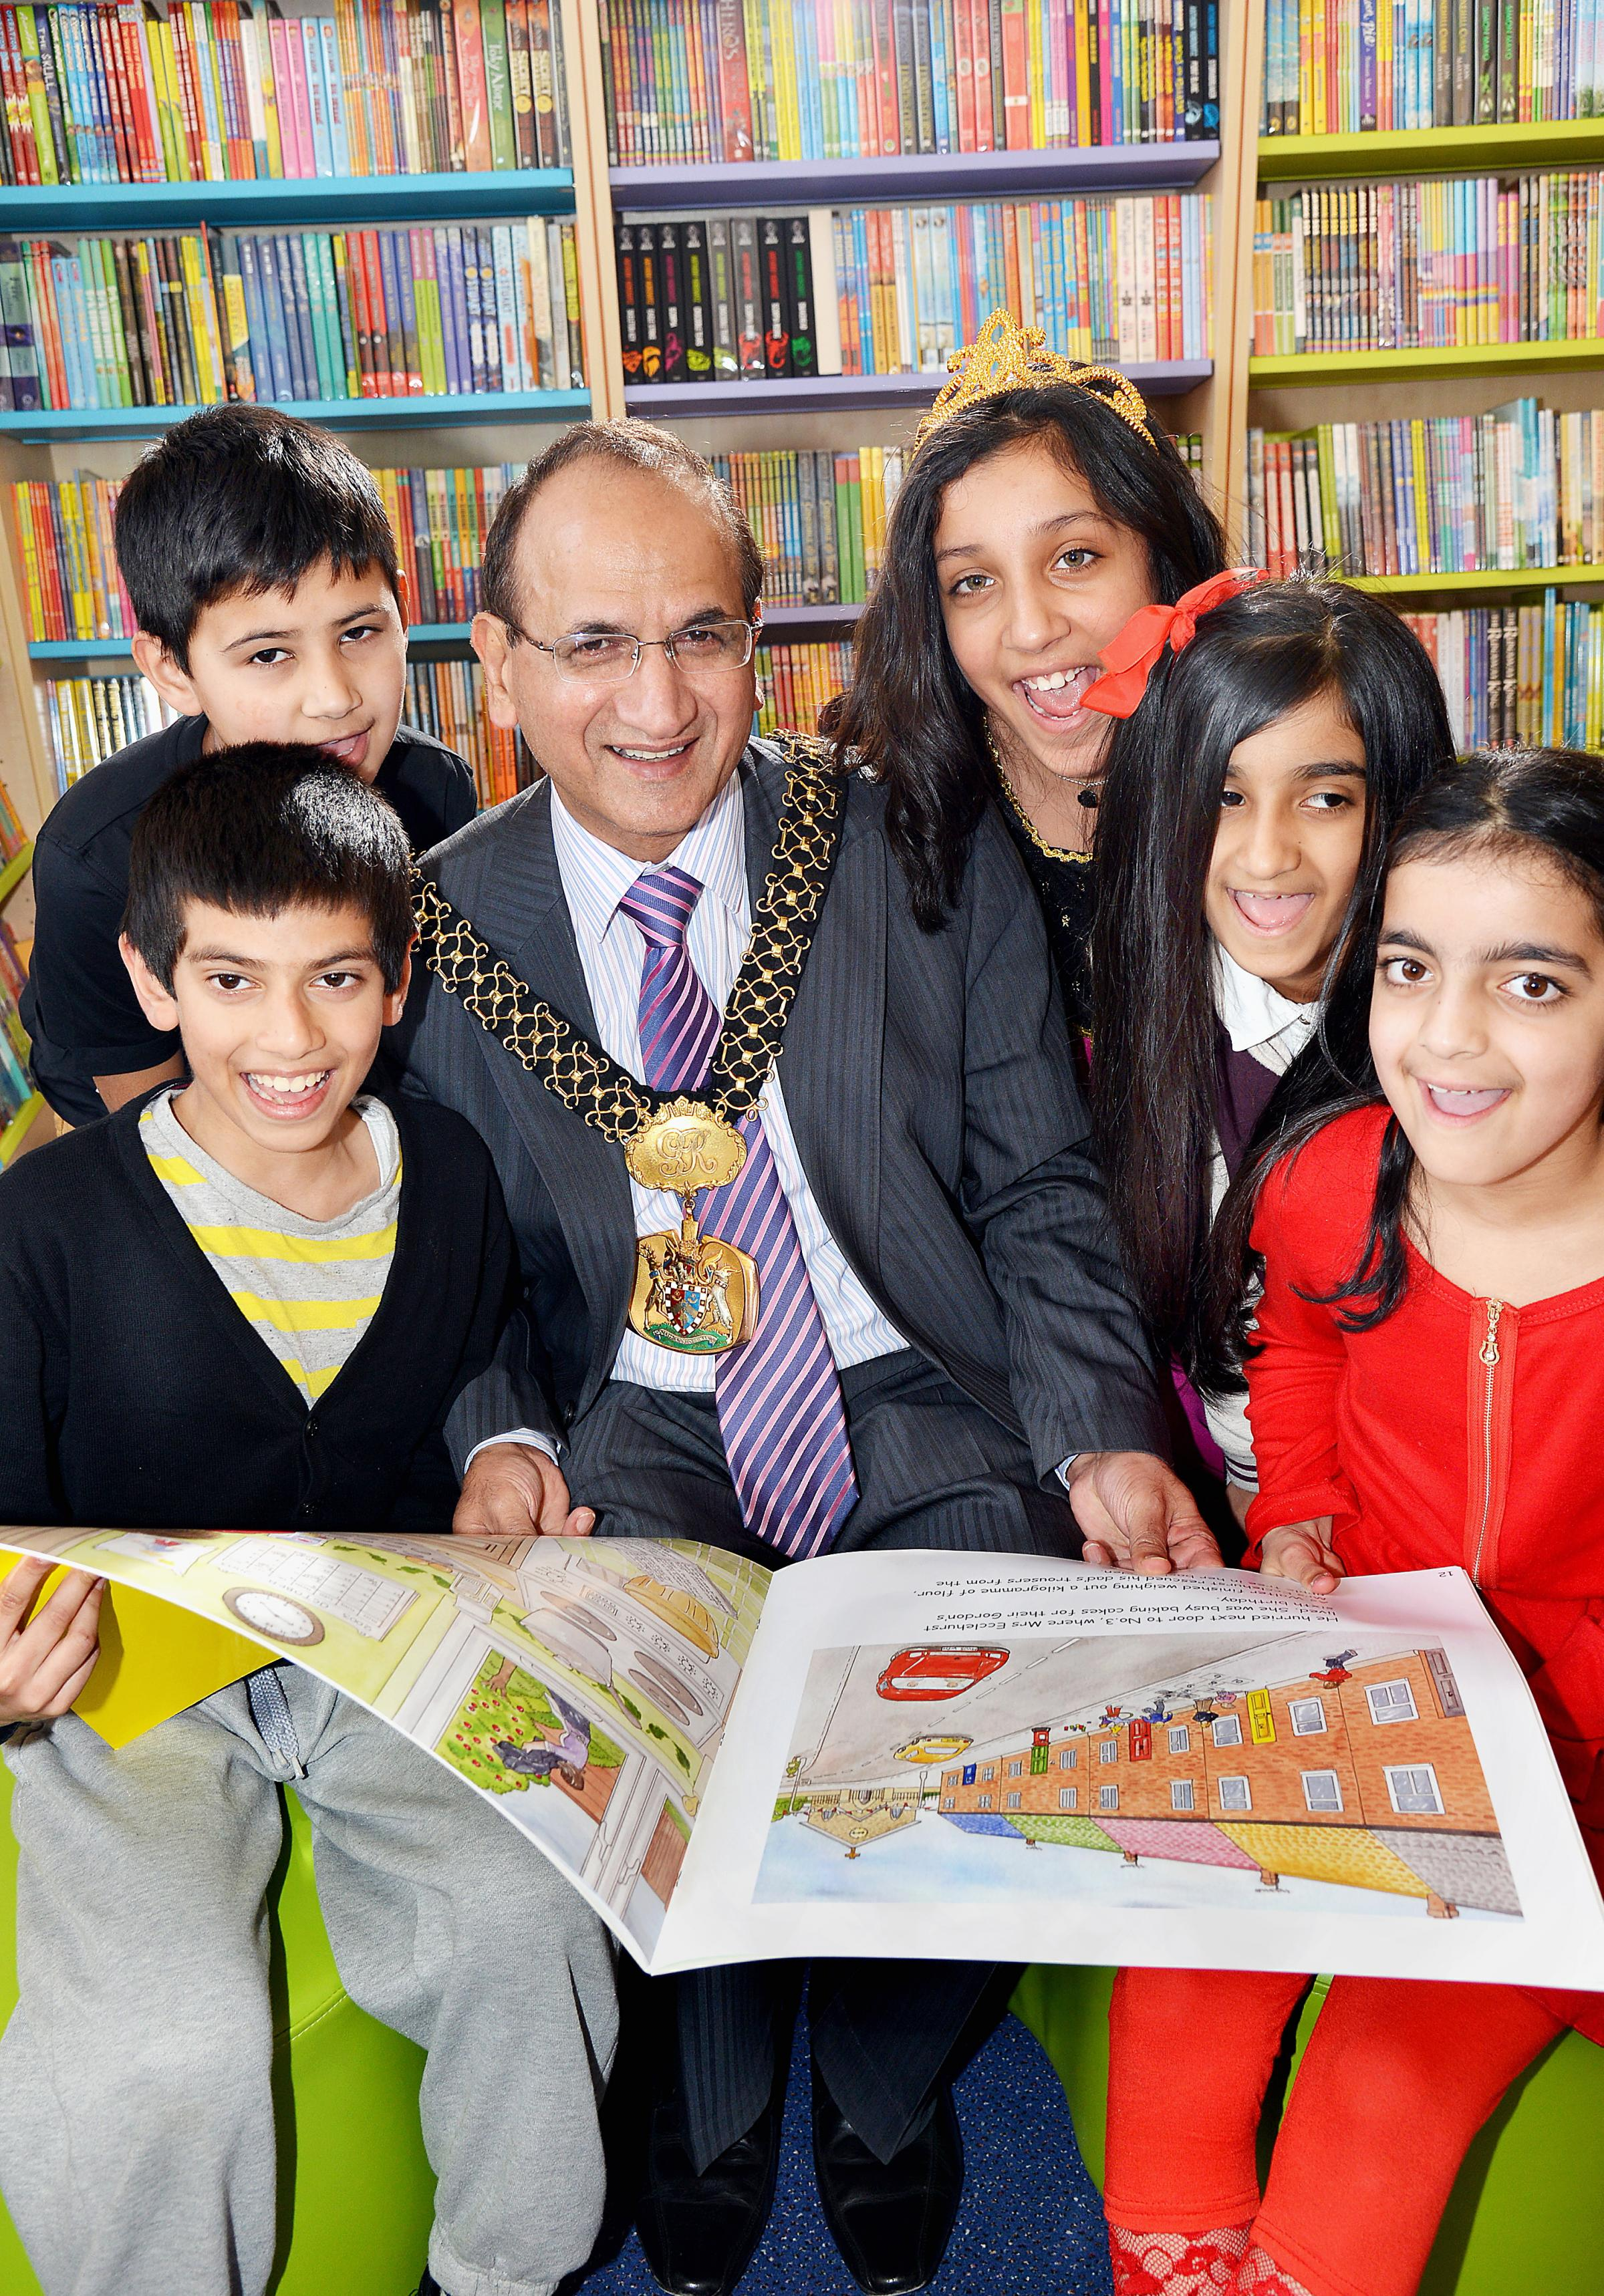 Lord Mayor of Bradford Councillor Khadim Hussain opens the library at Horton Grange Primary School Bradford with pupils (from left), Huzalfa Bismillah, nine, Subhan Ibrar, Amila Kauser, Muskaan Bhatti, and Maryam Alam (all ten)